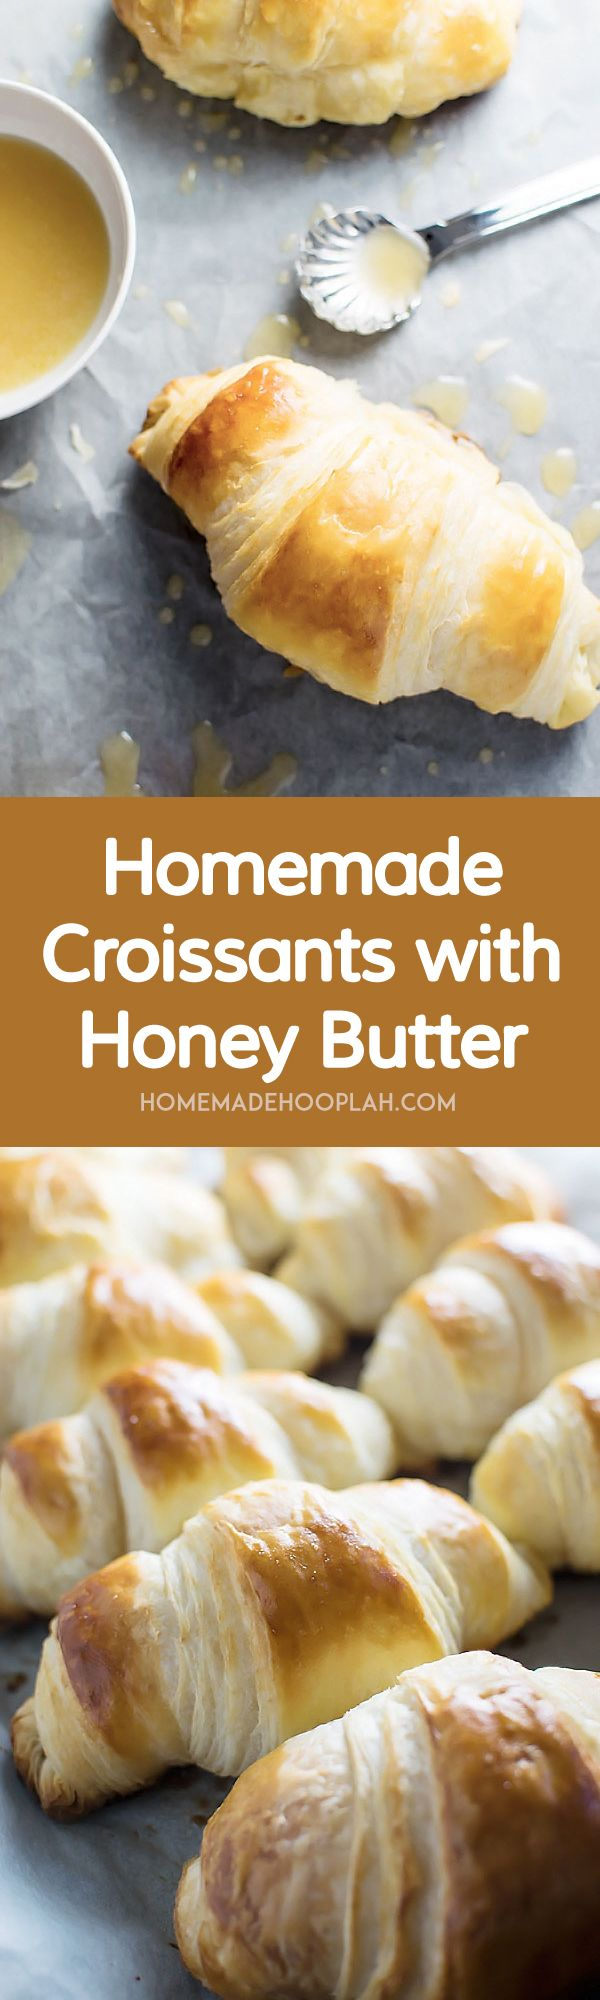 Homemade Croissants with Honey Butter Drizzle! With a little time you can make your own flaky, buttery croissants at home. They're great on their on but amazing with the honey butter drizzle! | HomemadeHooplah.com